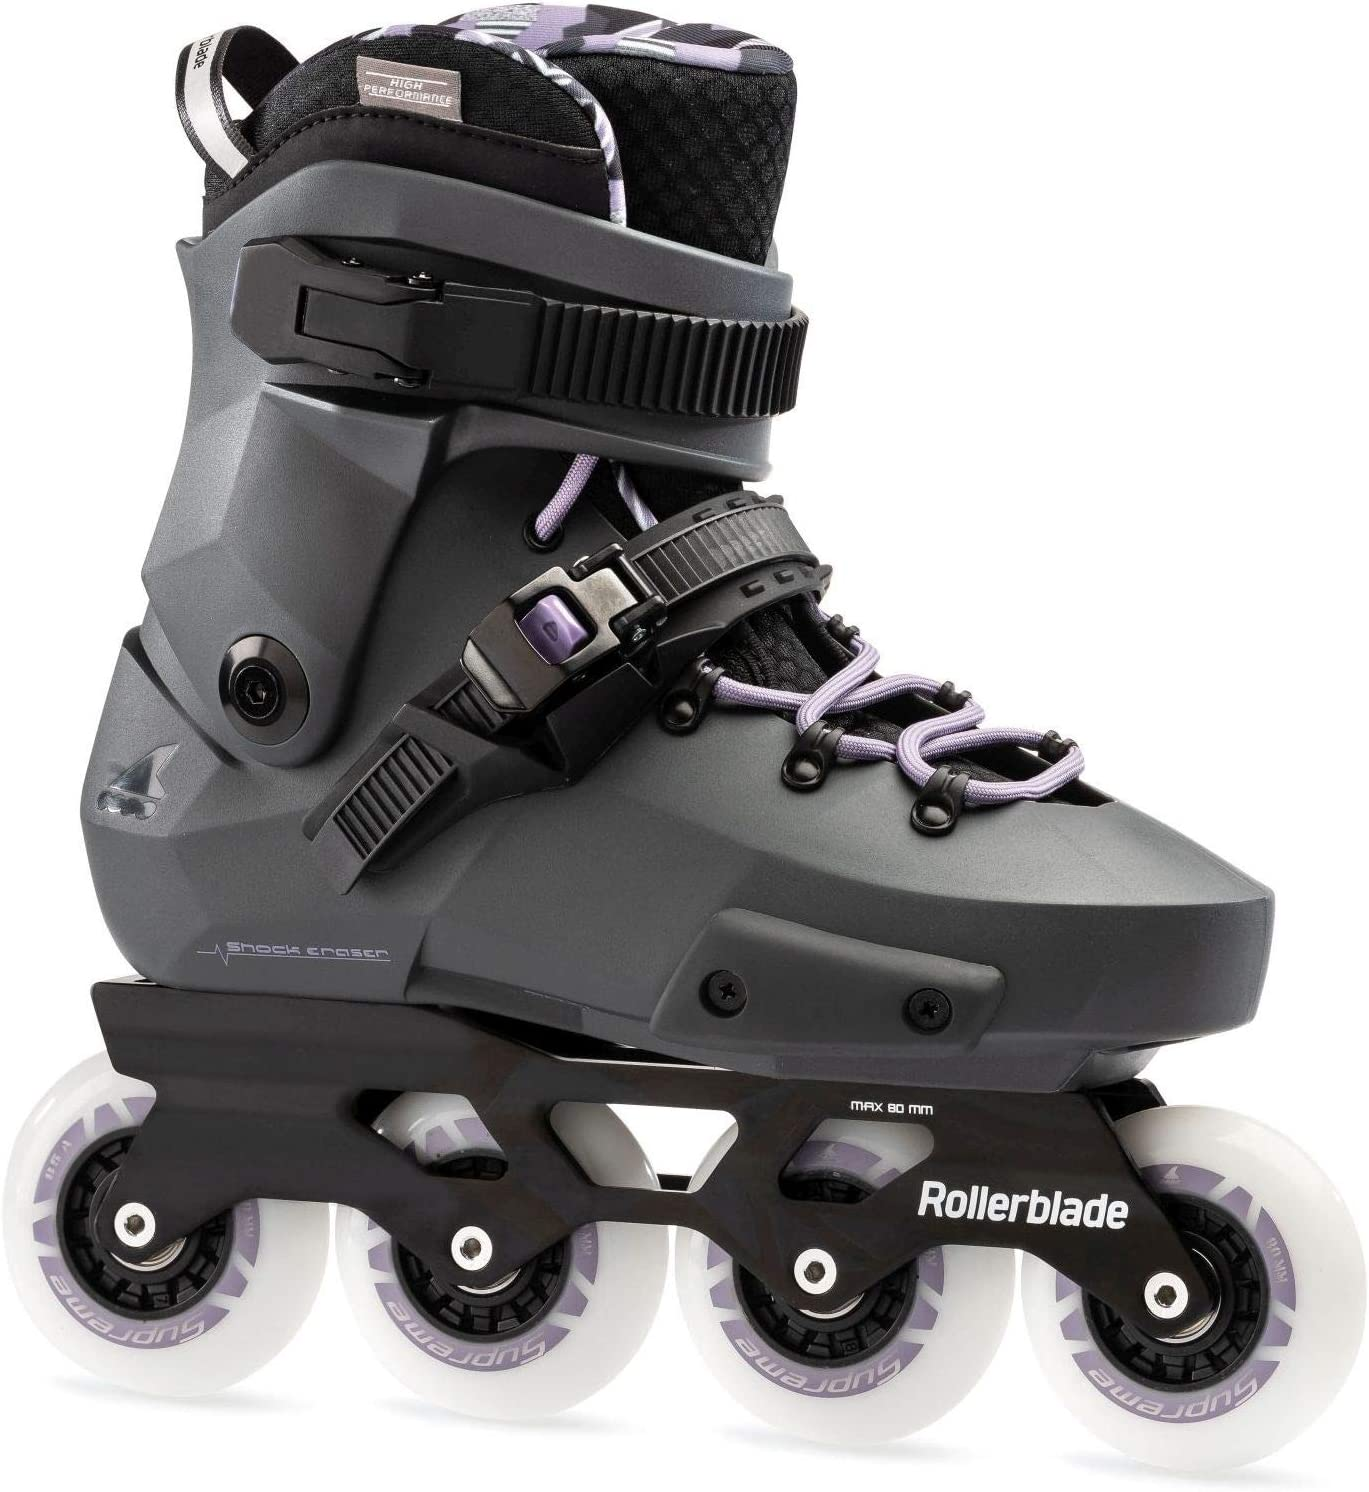 Rollerblade Twister Edge W Patines Gris, Mujeres, Anthracite/Lilac, 240